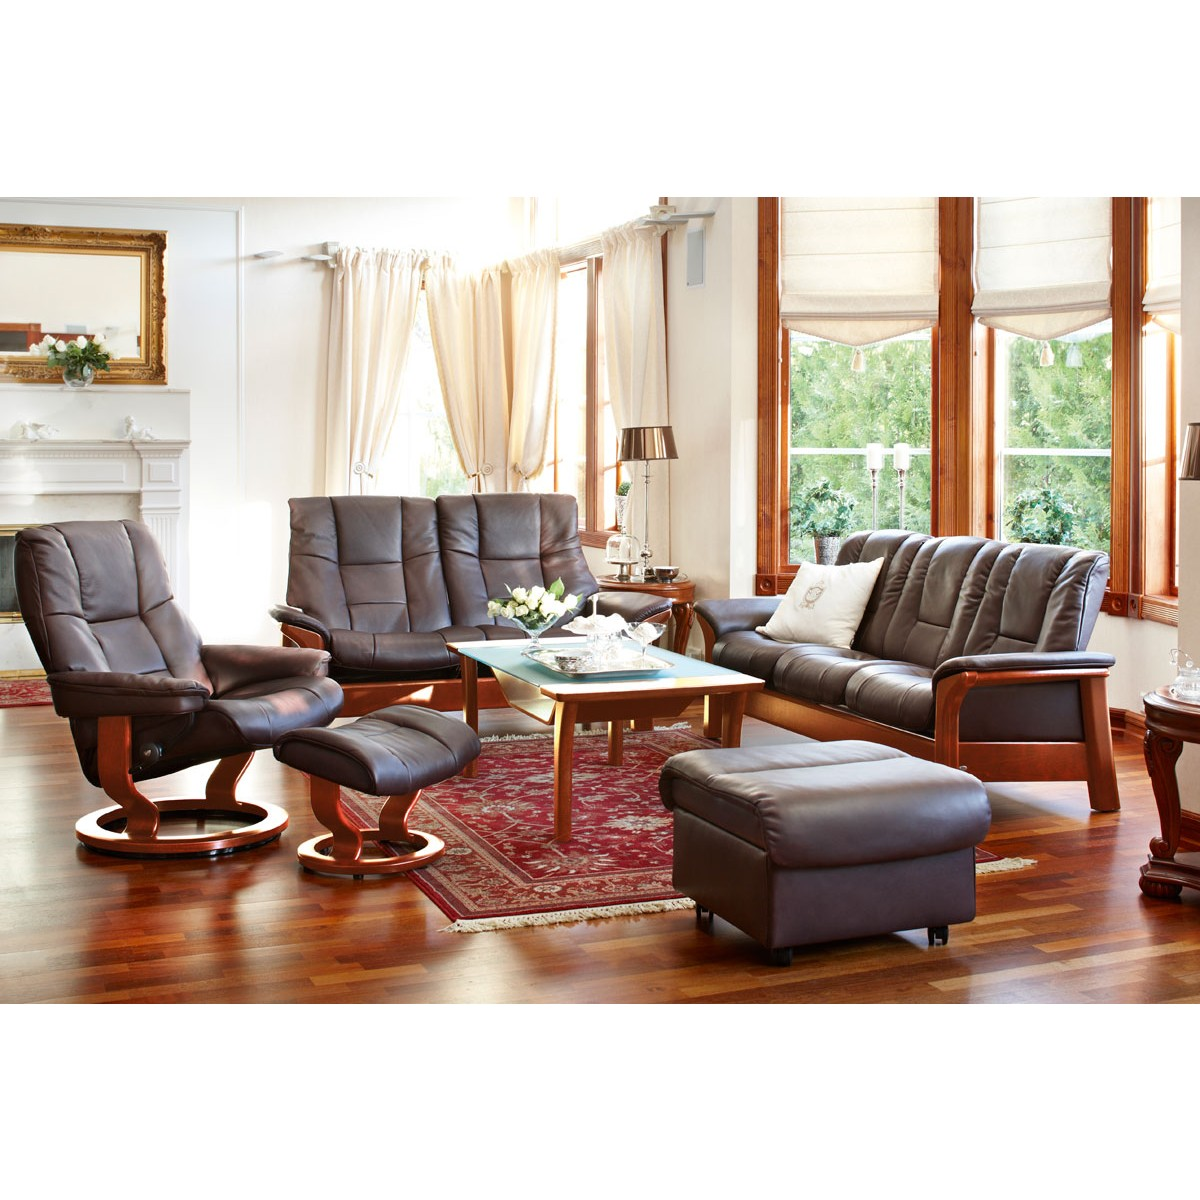 stressless mayfair large recliner ottoman from 2 795 00 by